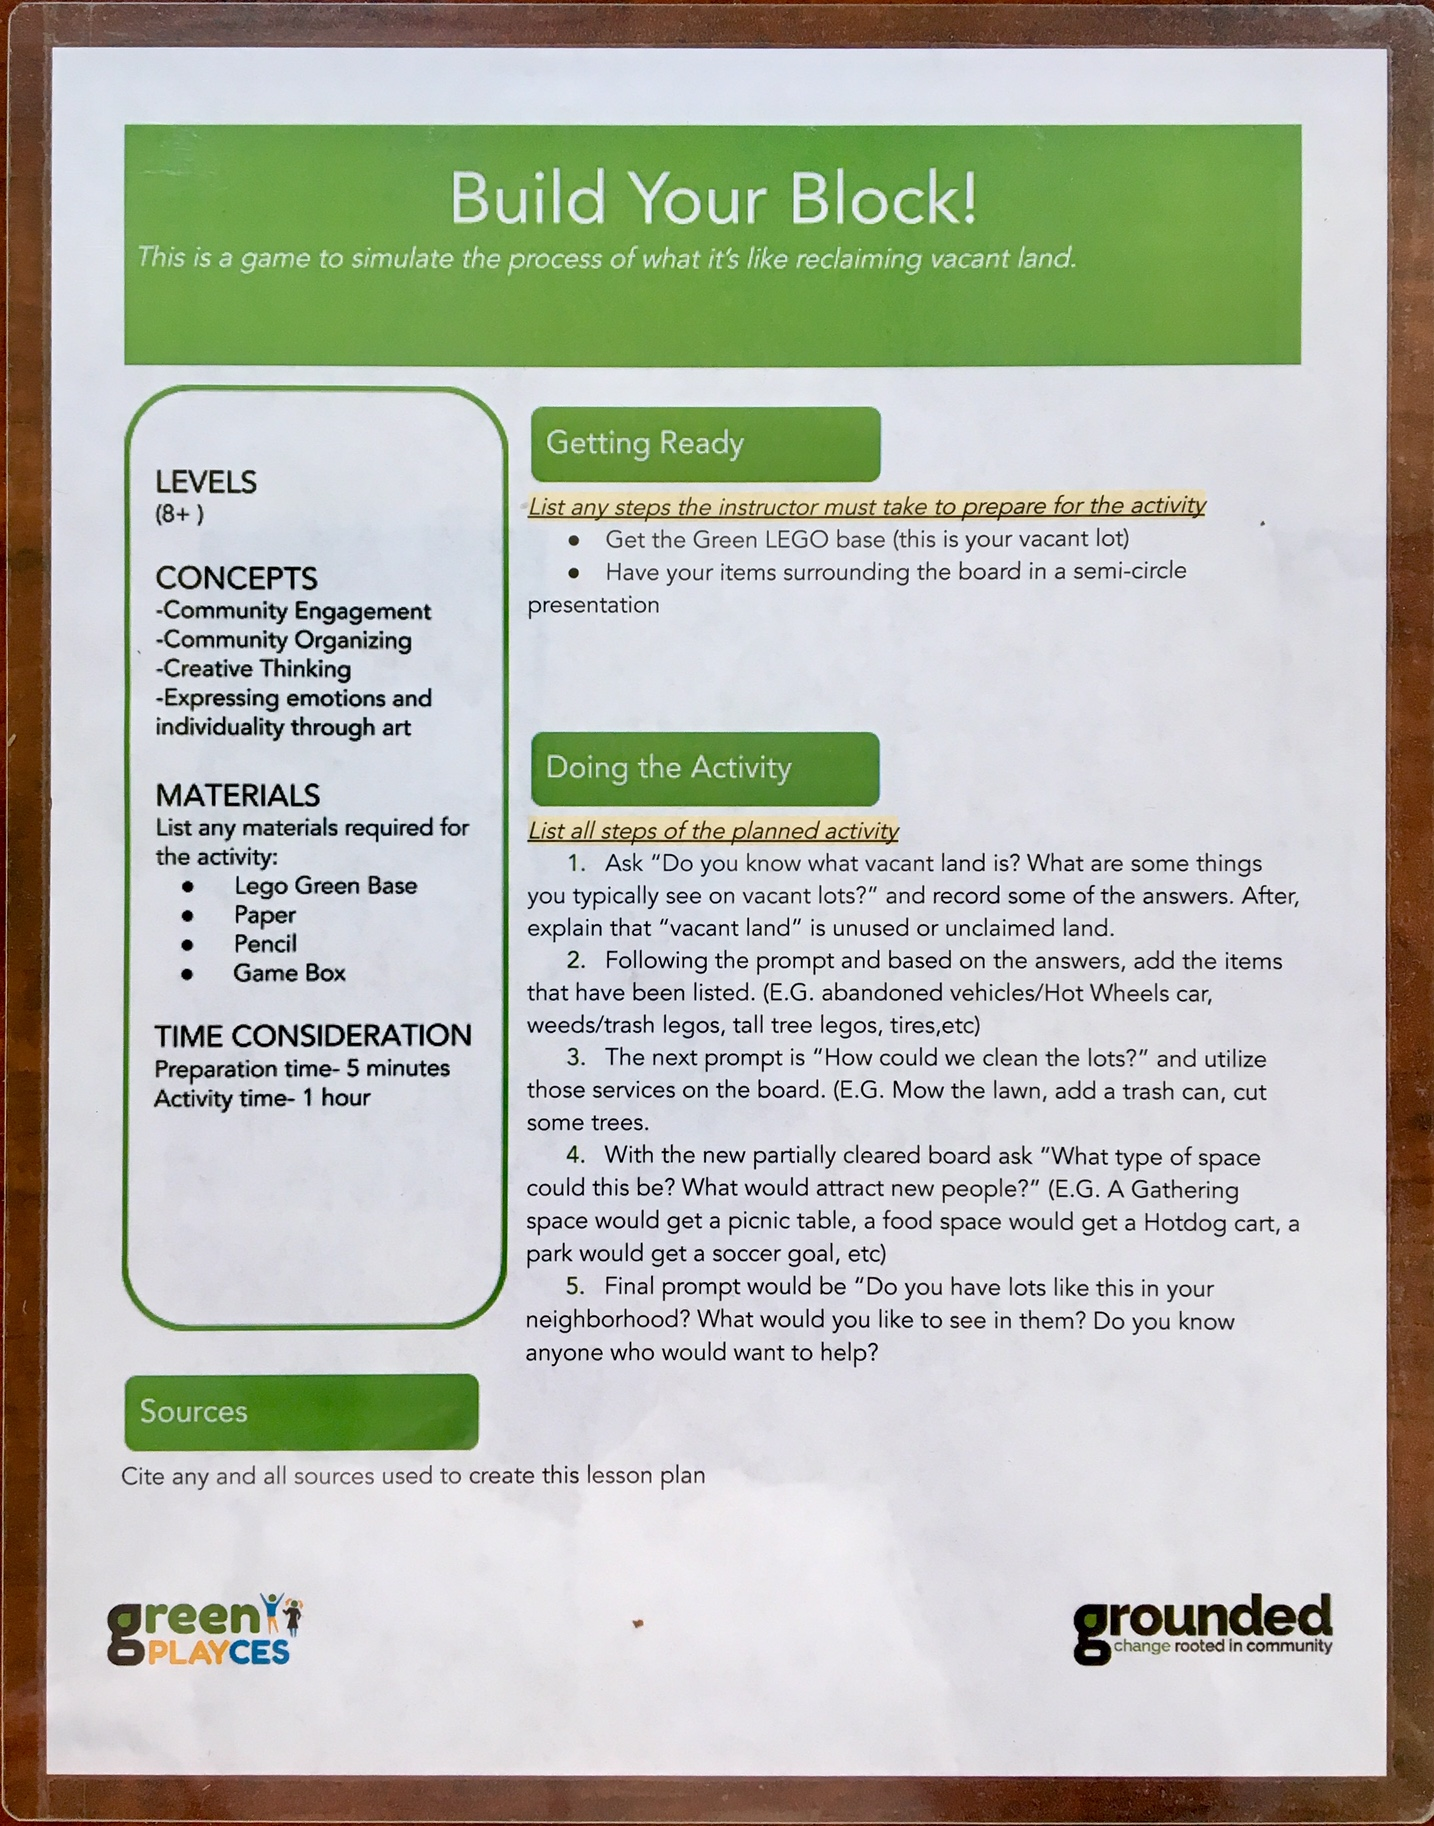 Grounded - Play Box Instructions